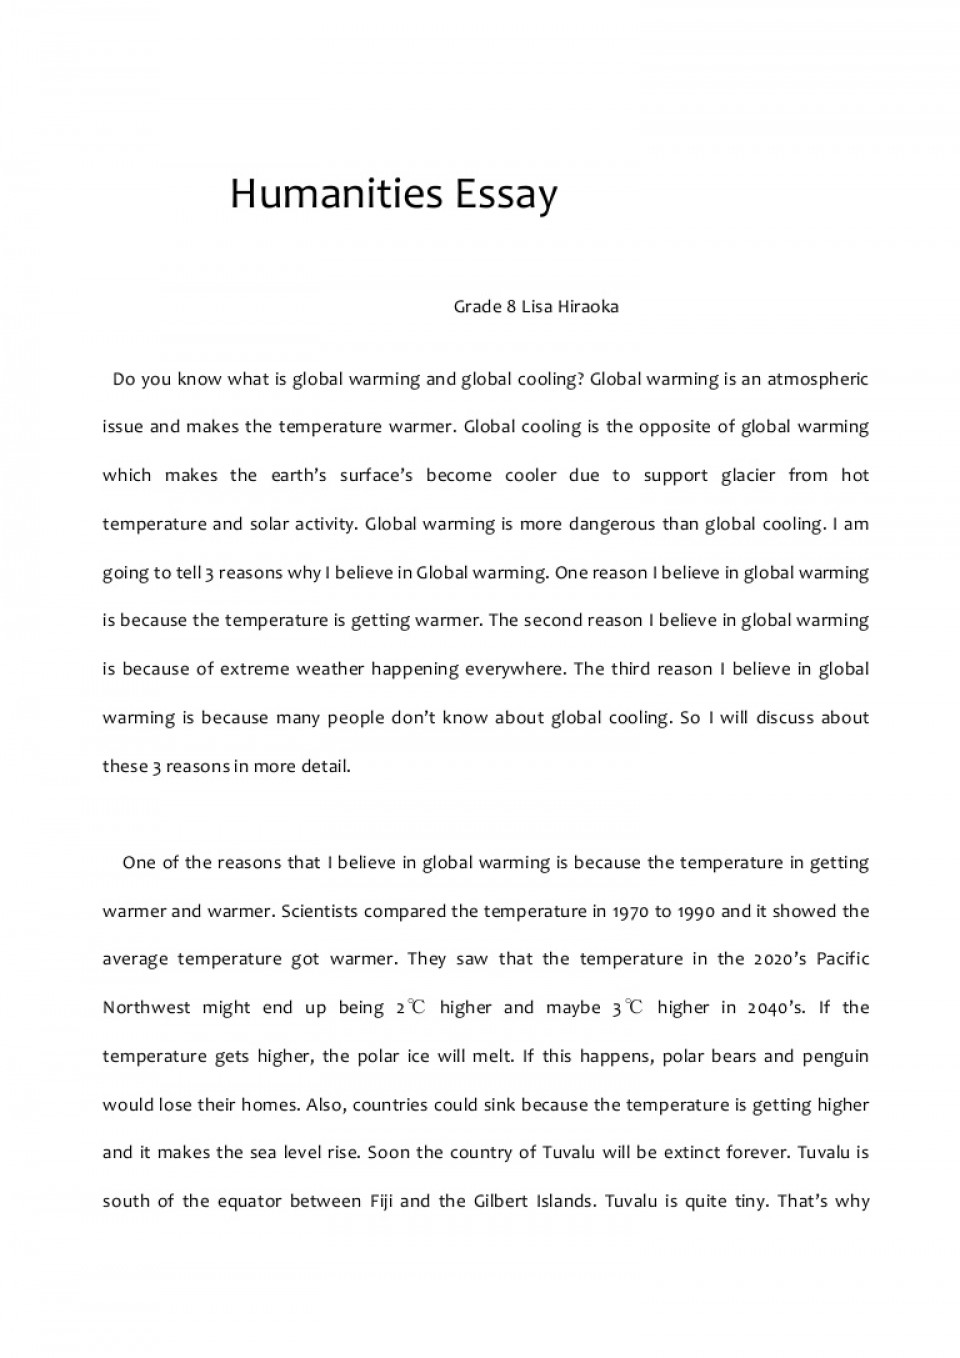 006 Global Warming Essay Humanitiesessay Phpapp02 Thumbnail Unusual Persuasive Thesis Free Research Paper Topics 960